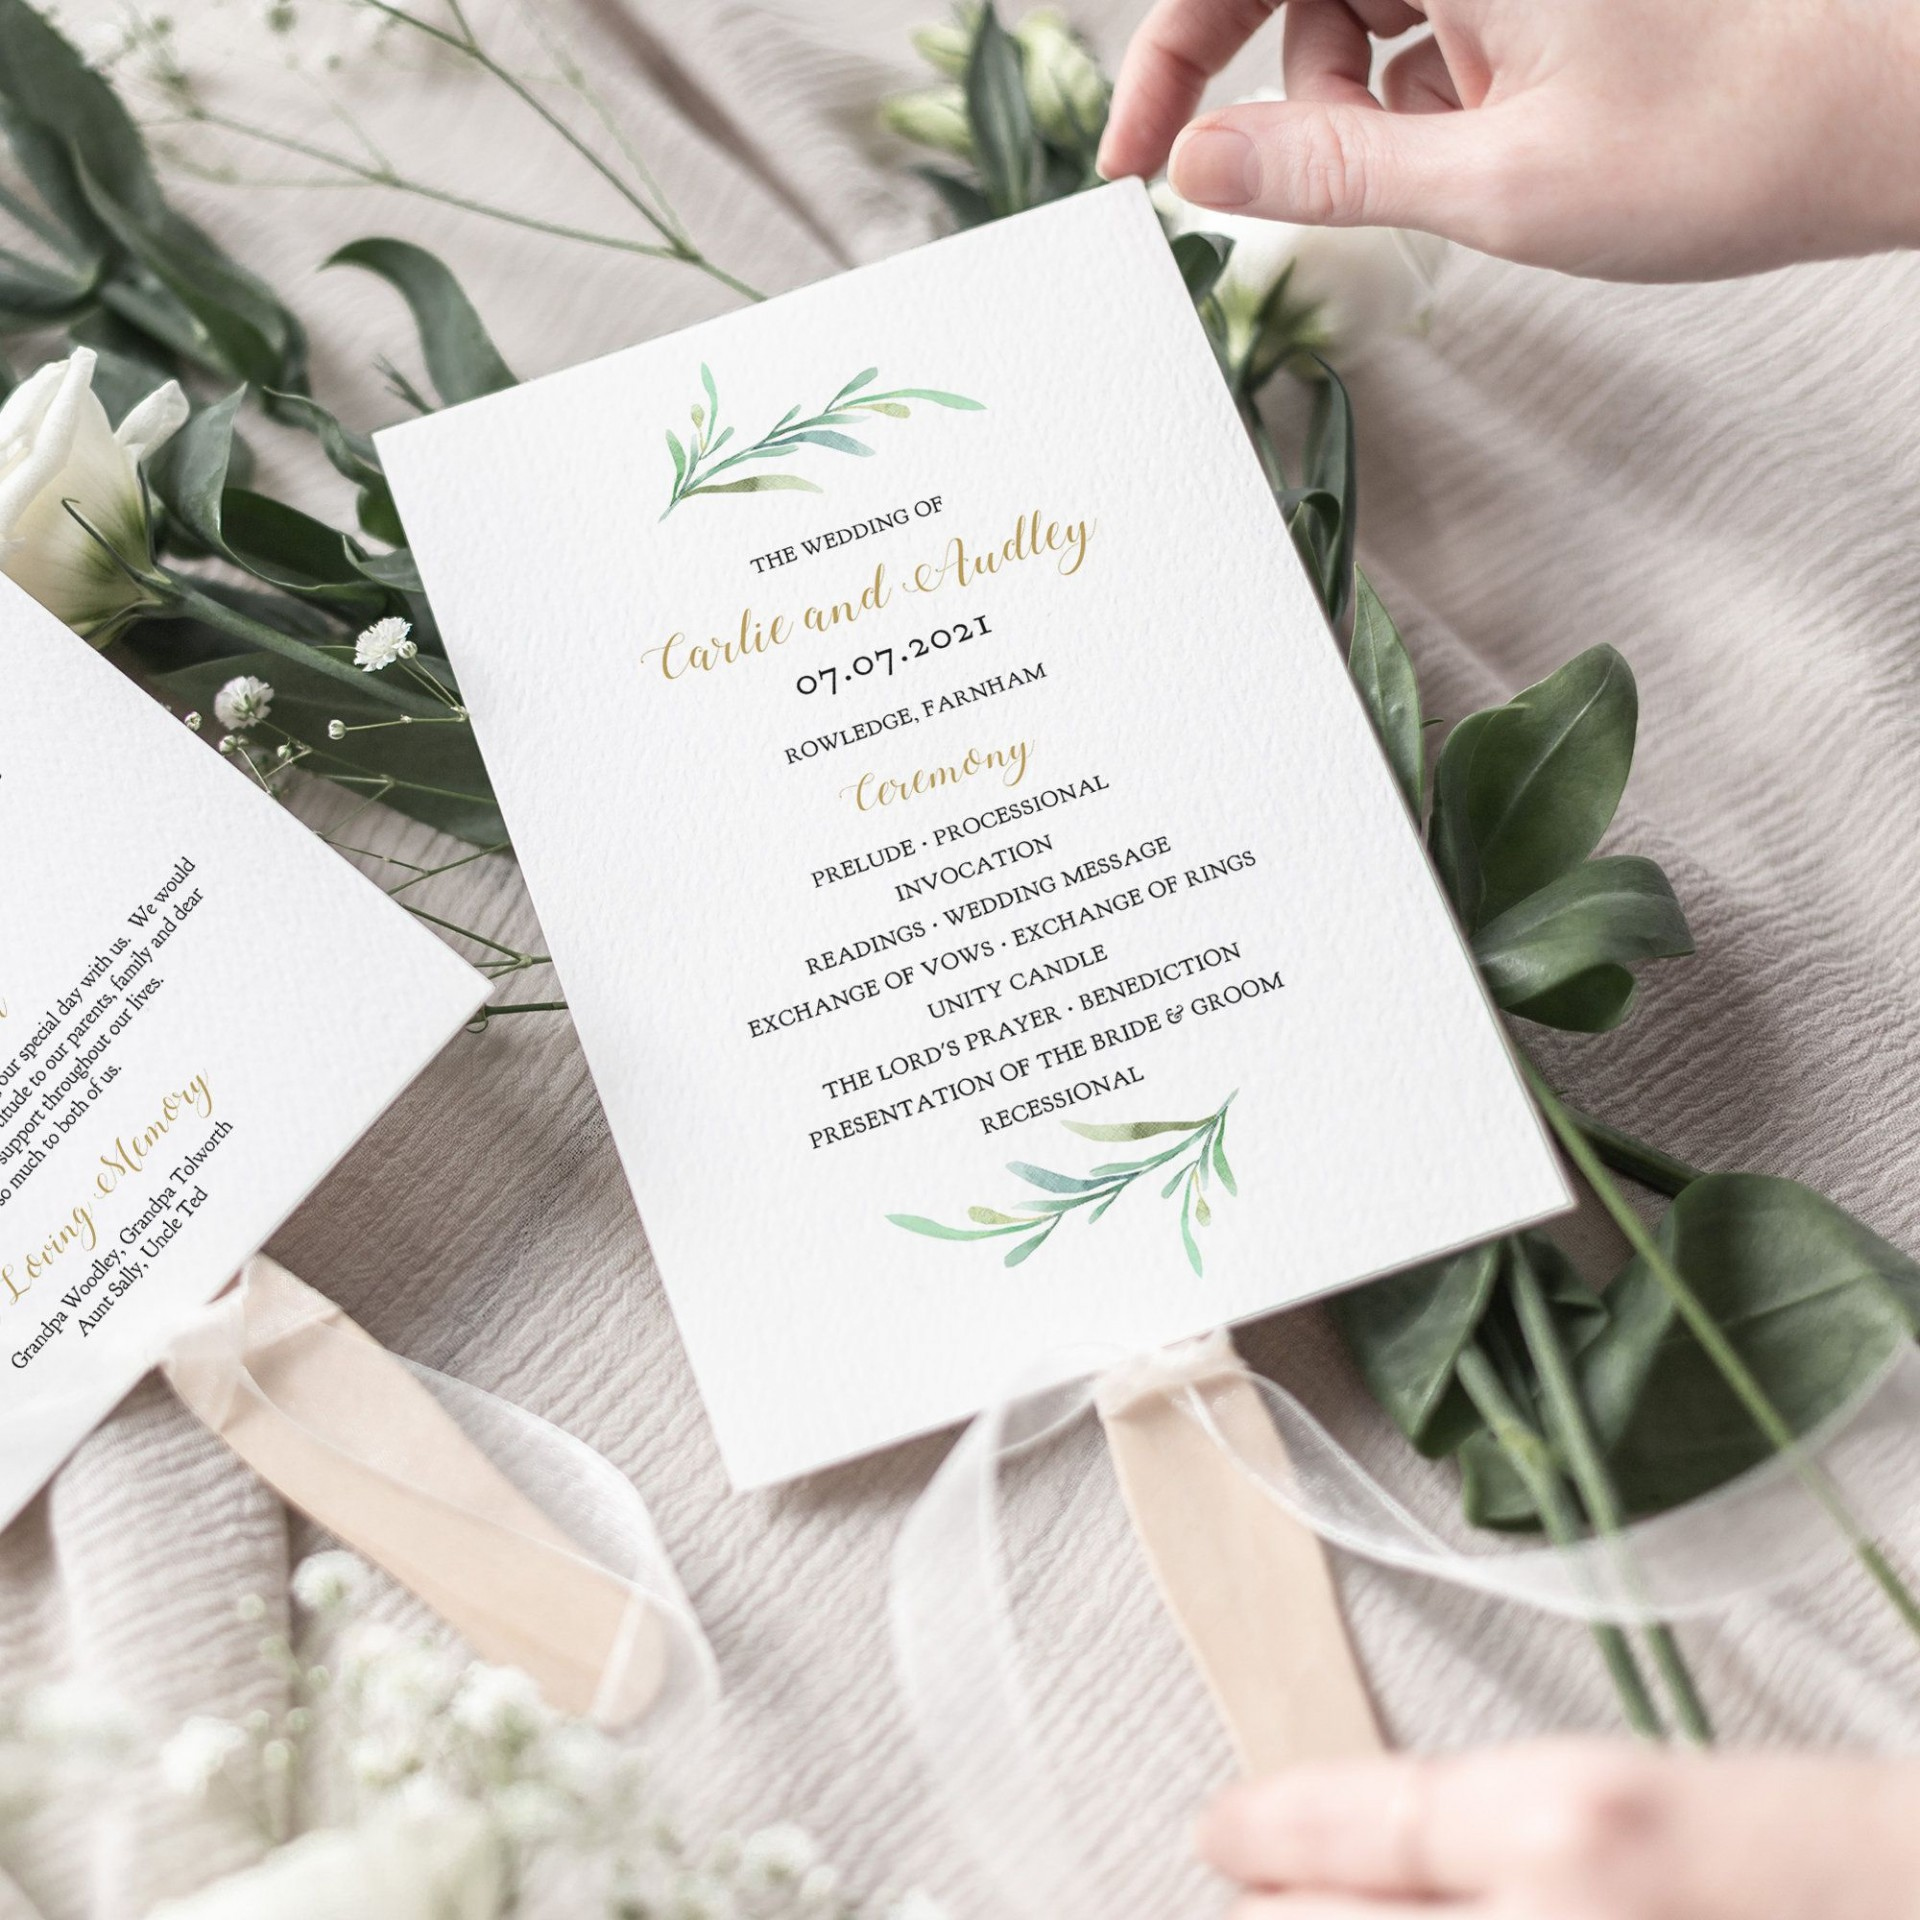 007 Stunning Free Printable Wedding Program Paddle Fan Template Picture  Templates1920